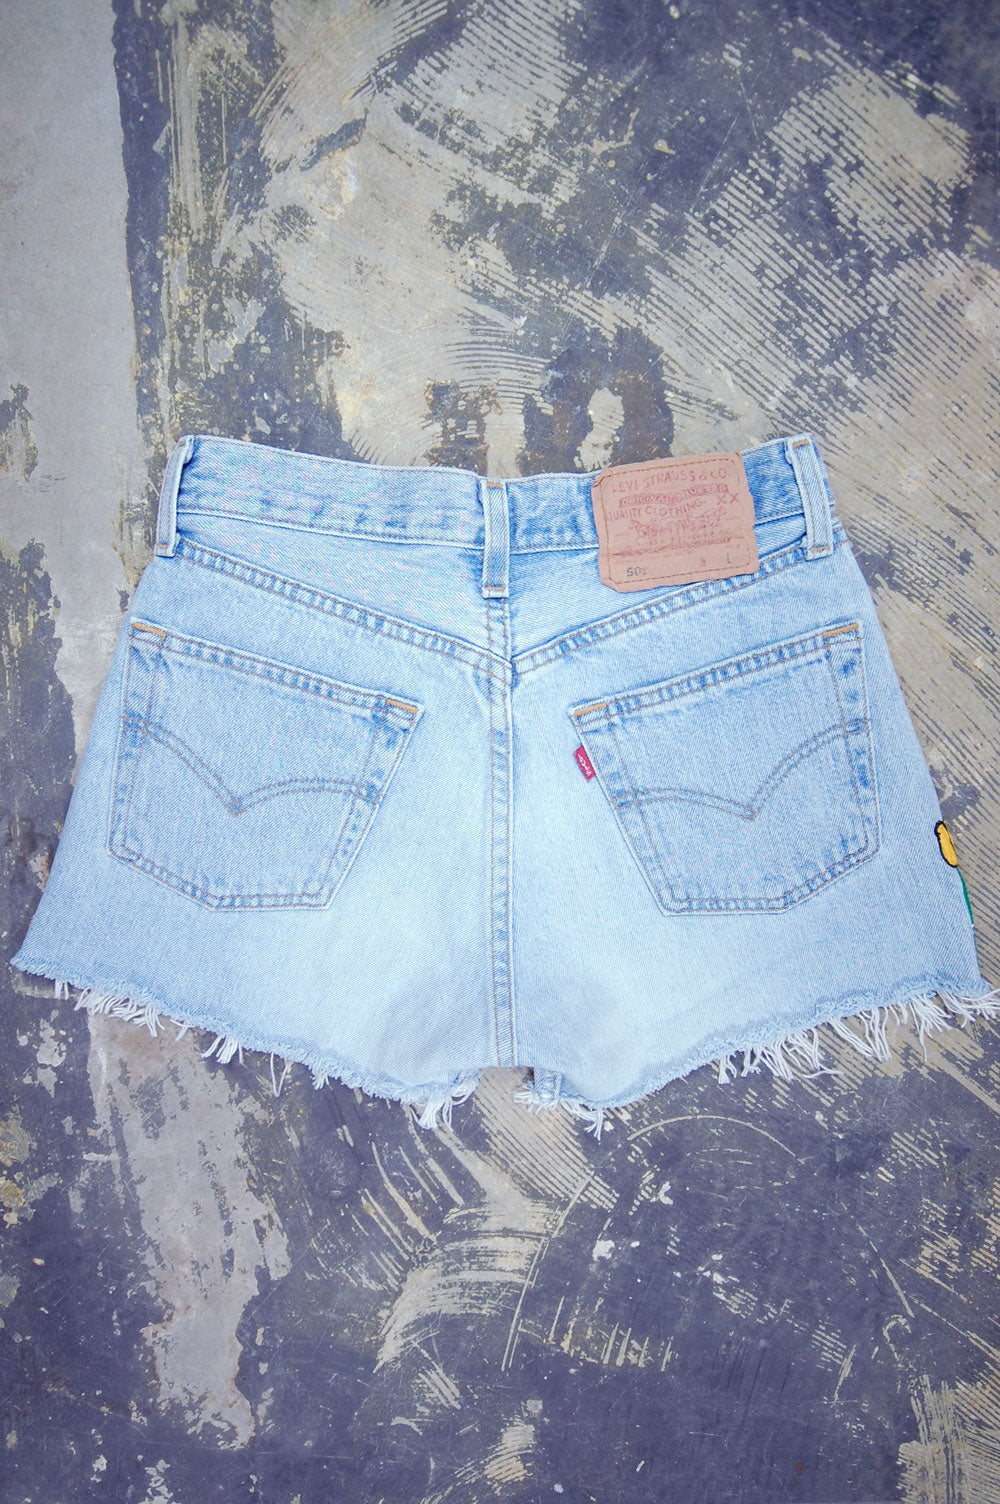 Vintage Levi's 501 Chain-Stitched Tulips Artwork Cutoff Denim Shorts